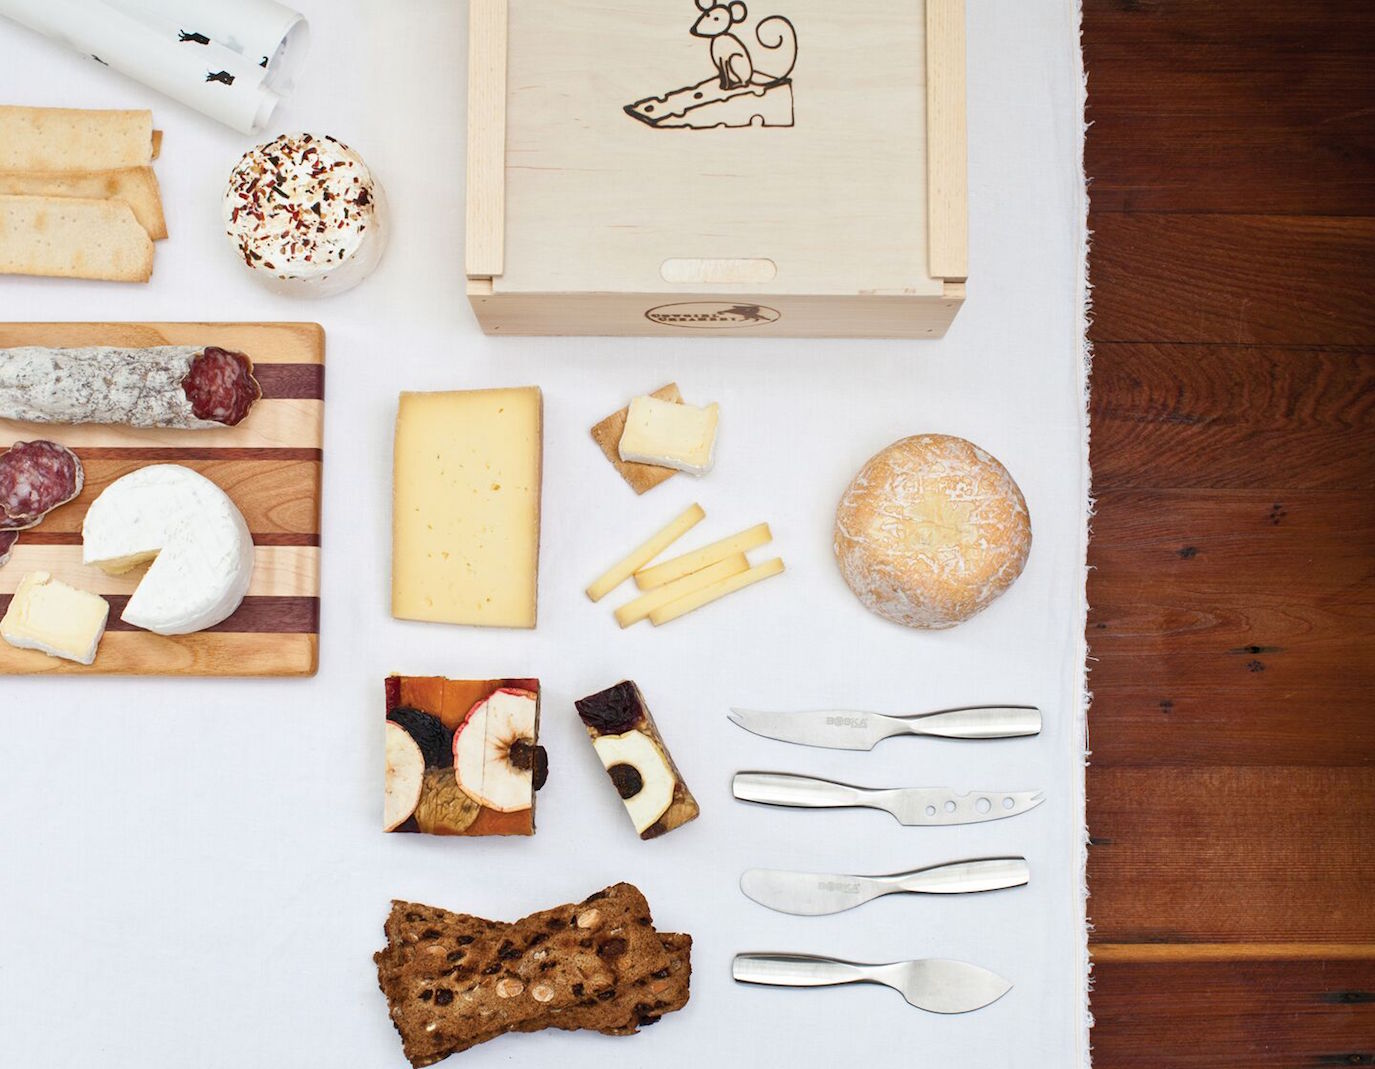 Cheese supplies can be found at Cowgirl Creamery